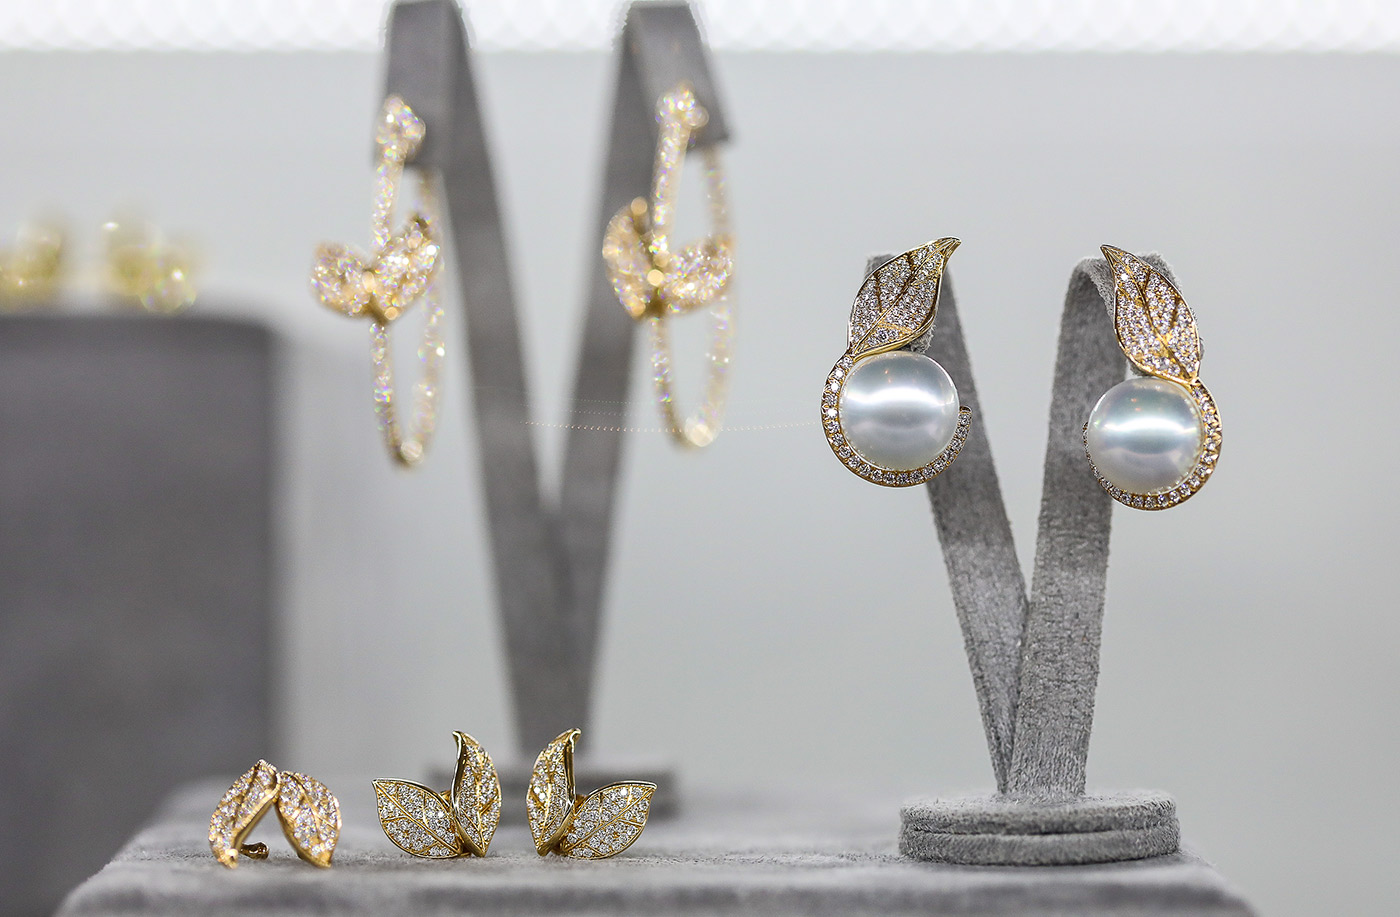 Nadine Aysoy Feuille collection earrings and ea-cuffs in yellow gold, pearls and diamonds